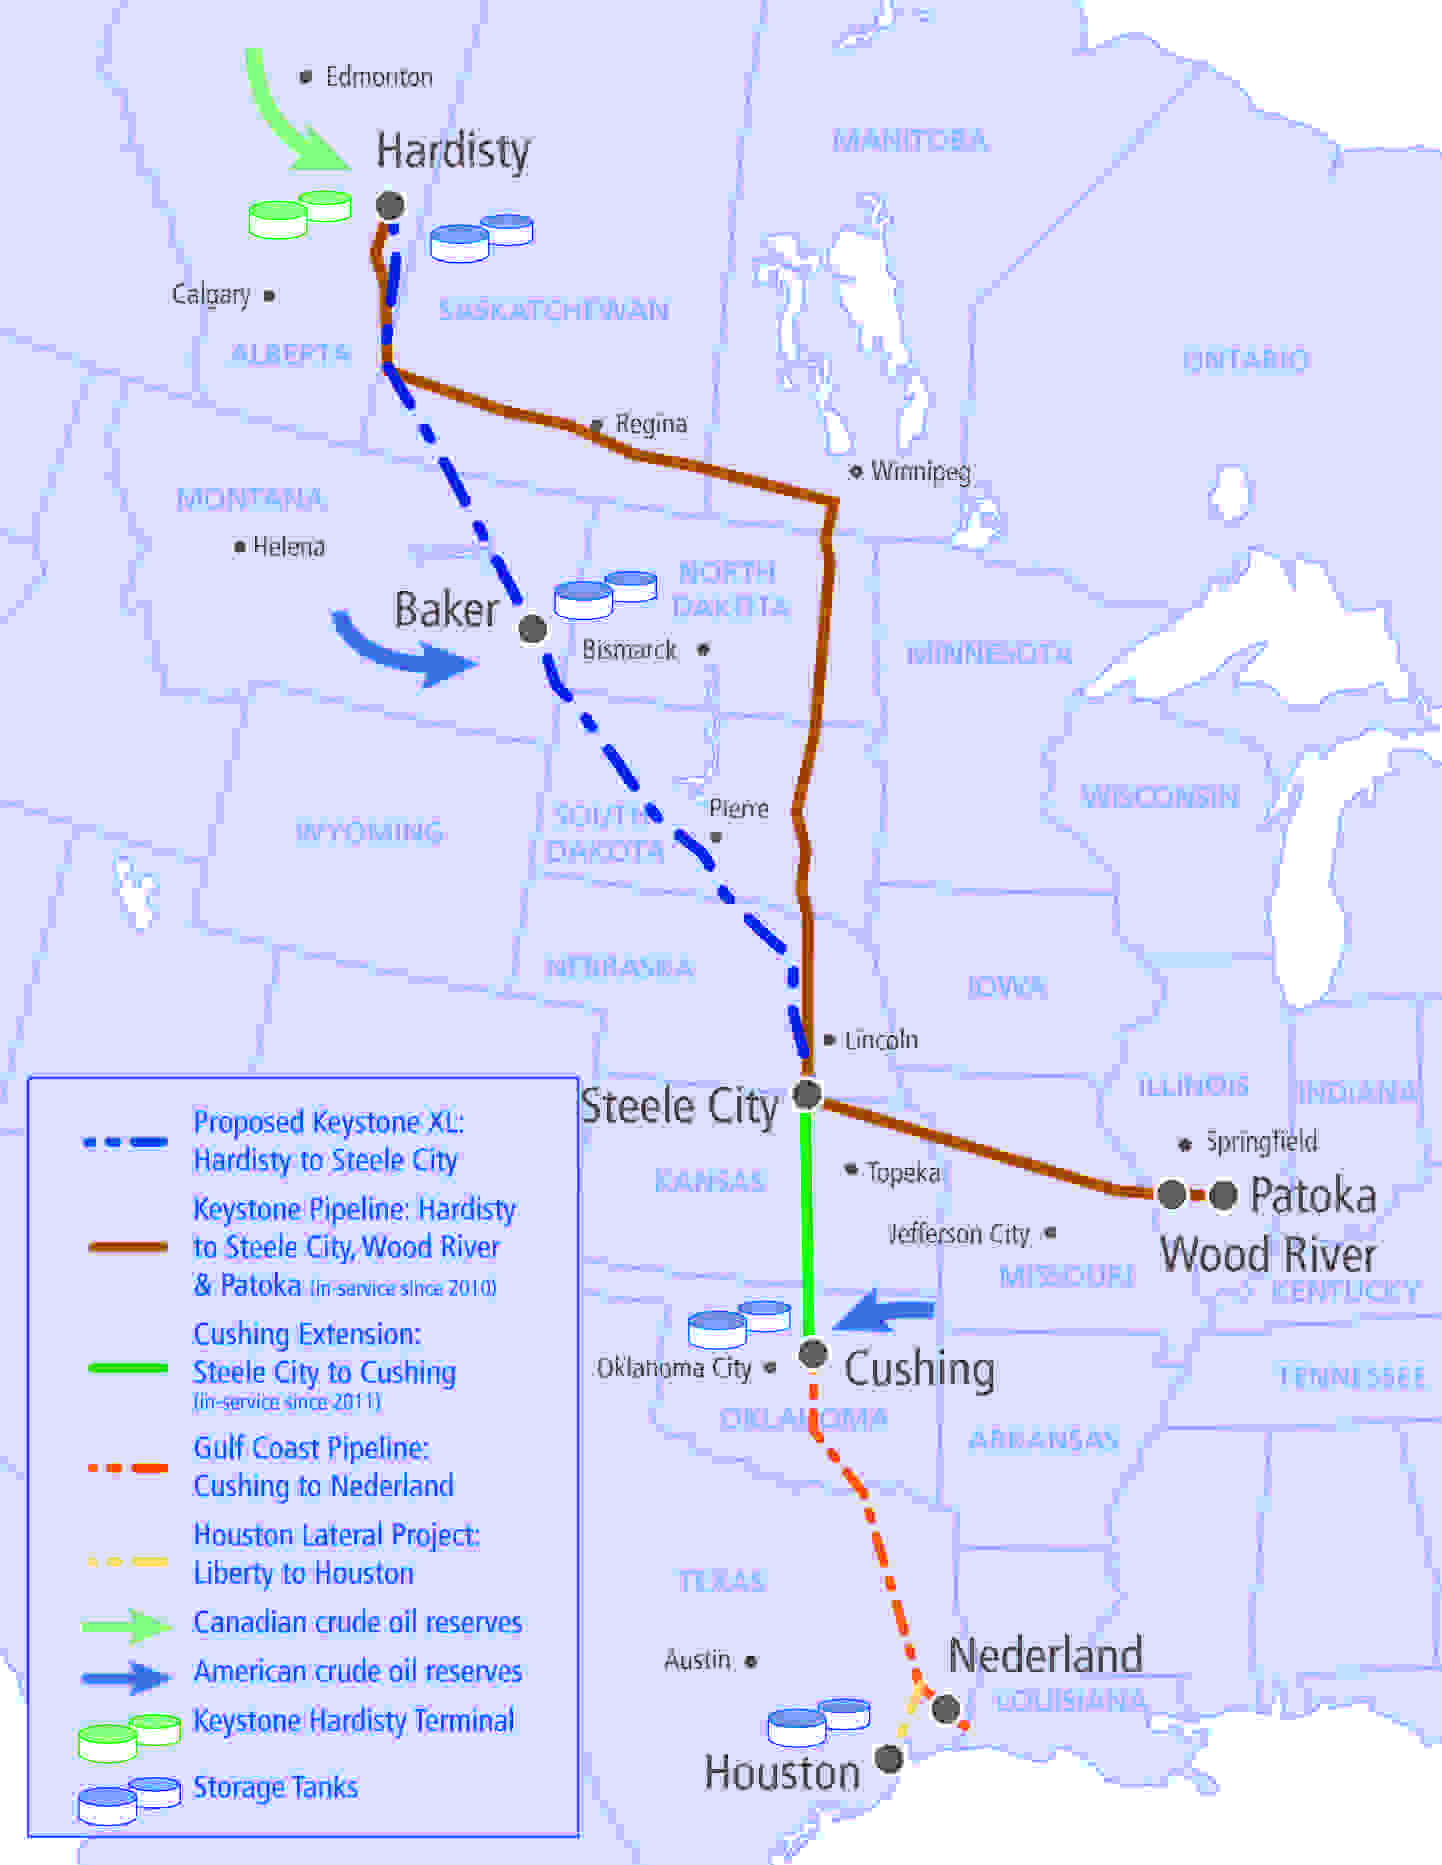 Keystone Pipeline System 2013_Highlights